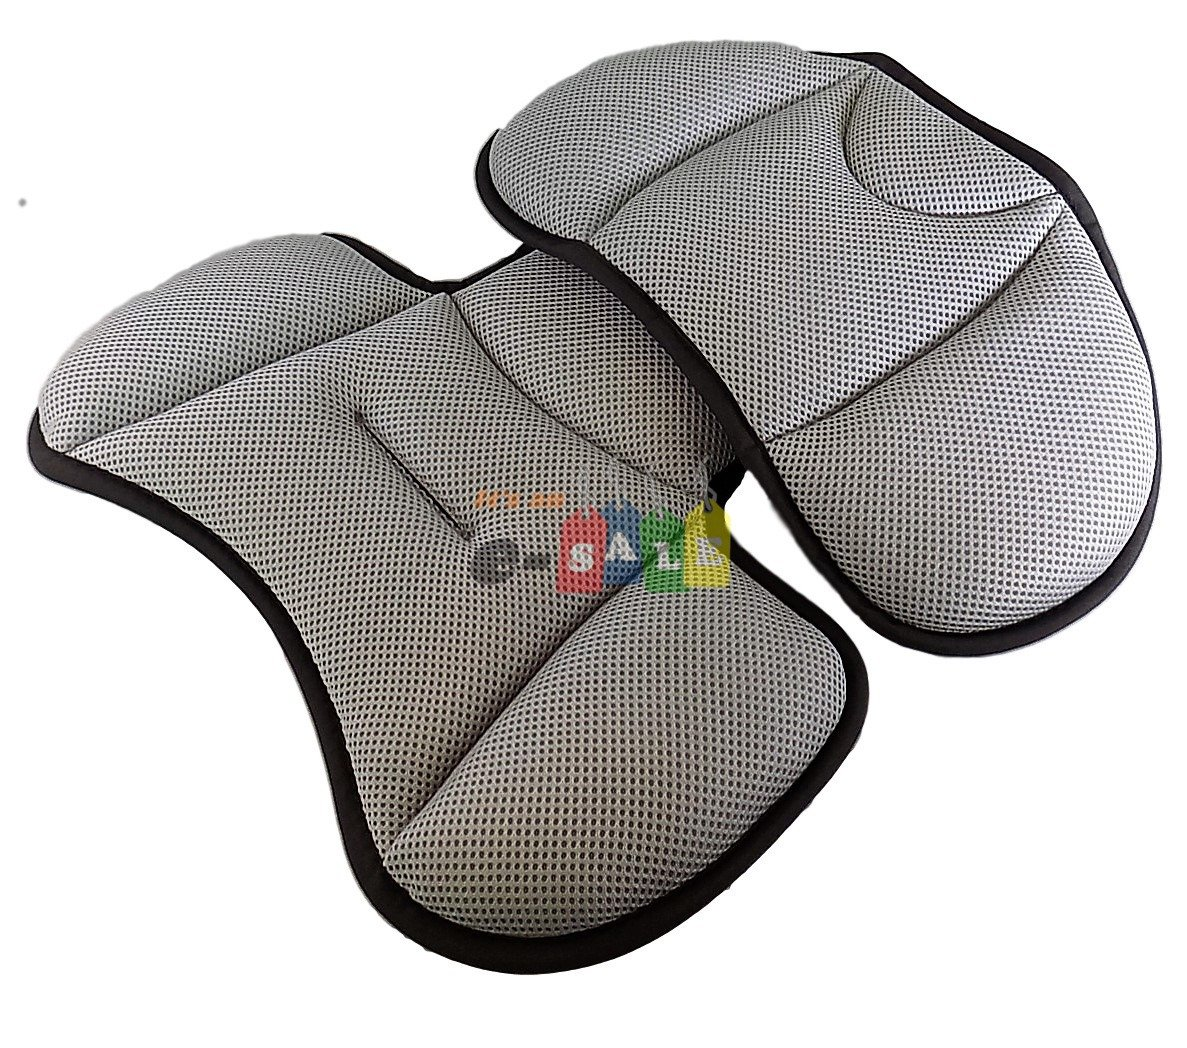 Replacement Head and Body Insert Pads for Chicco Keyfit Or Keyfit 30 Infant Car Seat. Make Your car seat Look Nice and Clean with The Inserts for The New Baby. These Inserts are Compatible with All K